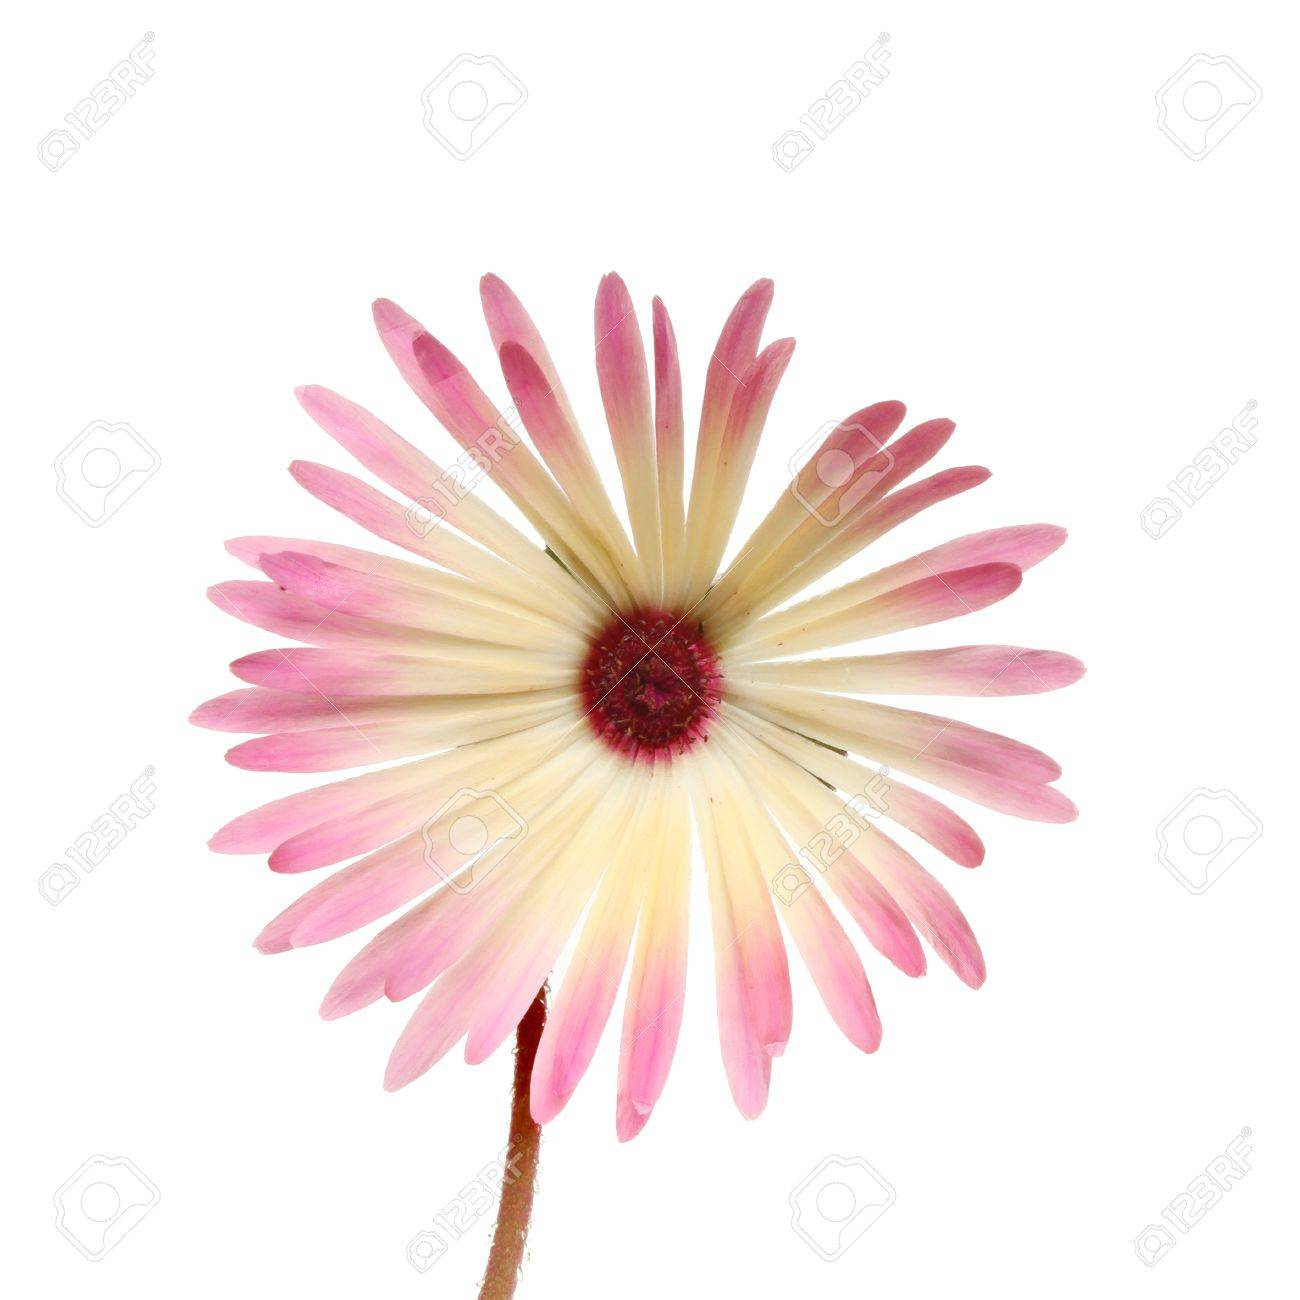 Mesembryanthemum flower meaning midday opening isolated against mesembryanthemum flower meaning midday opening isolated against white reklamn fotografie 14771236 izmirmasajfo Image collections